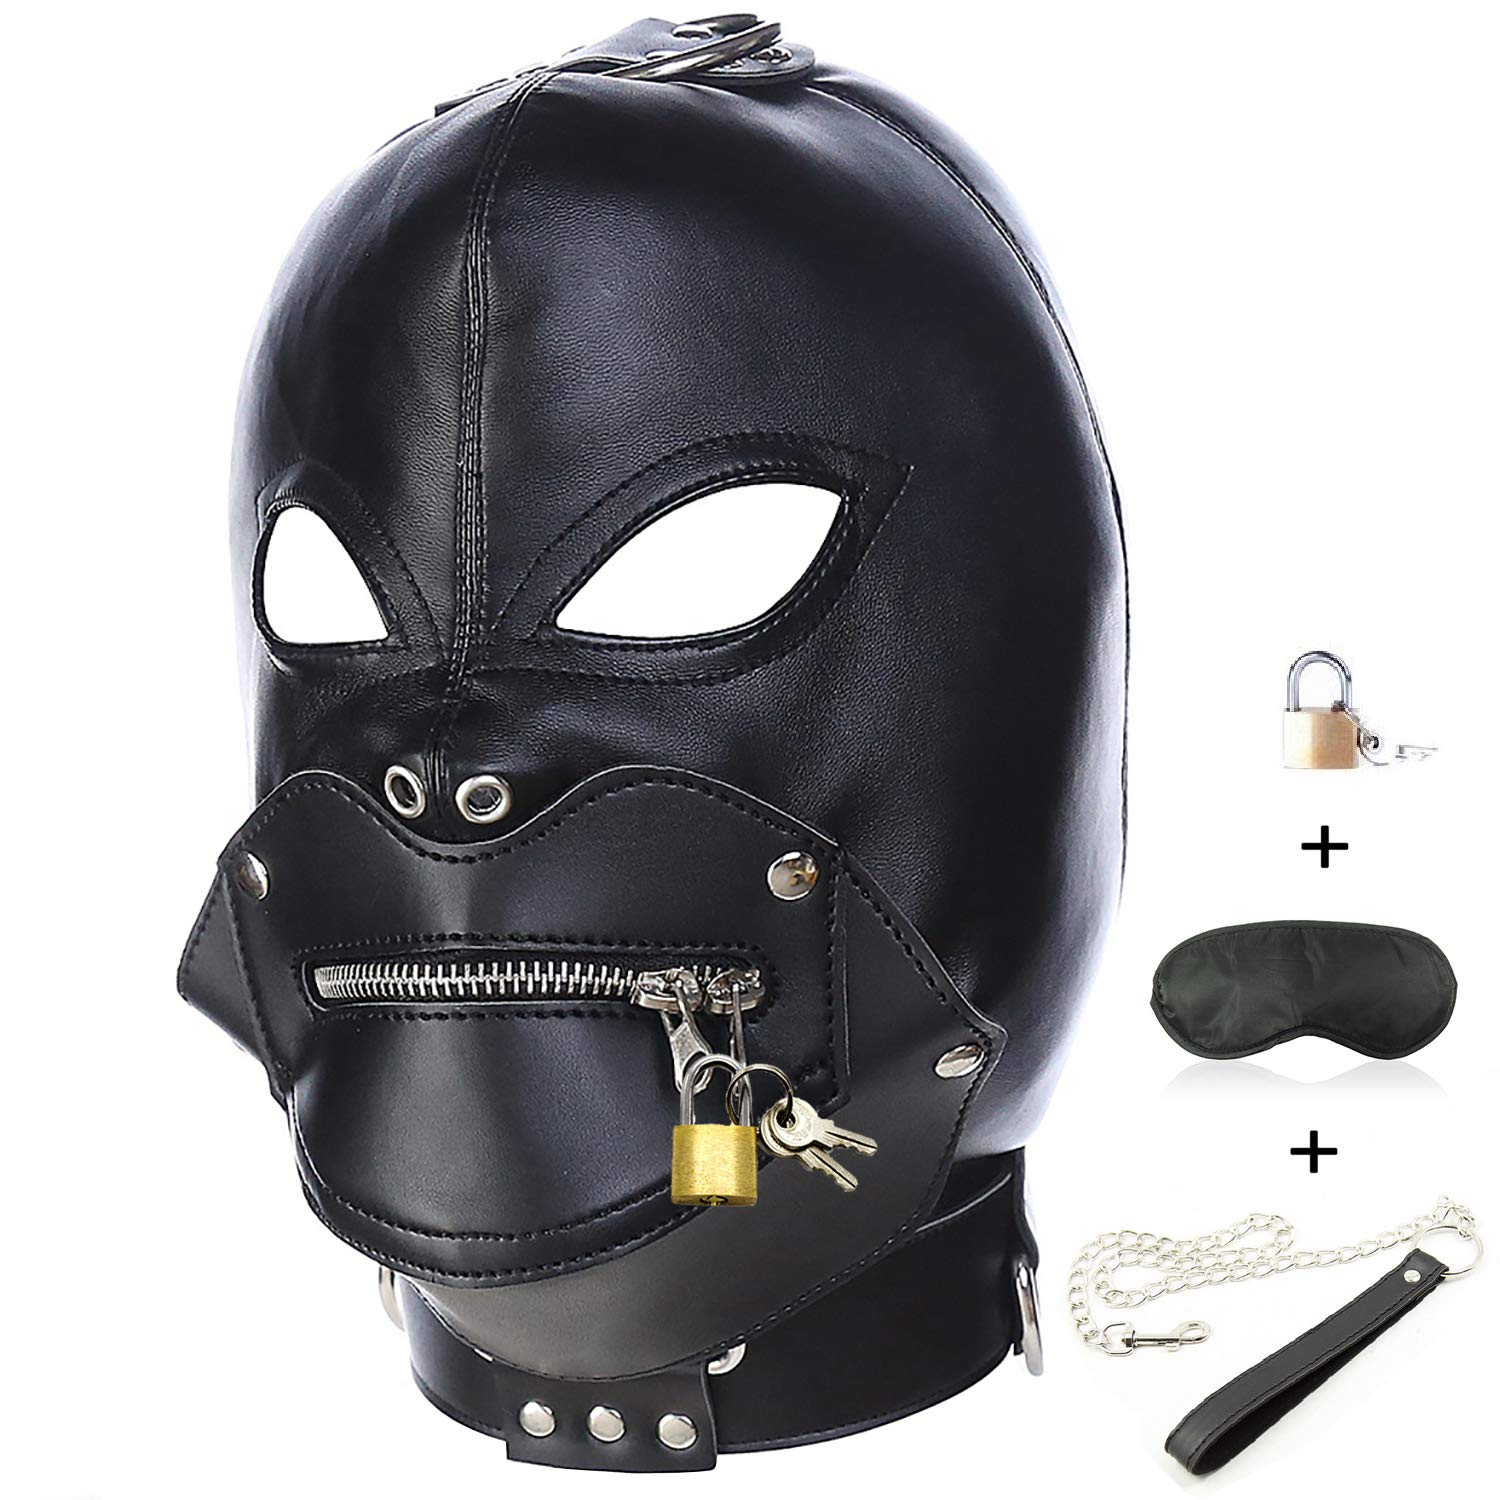 Leather Costume Head Mask Hood - Black Sealed Full Face Nose Holes Breathable Unisex Masquerade Headgear Mask